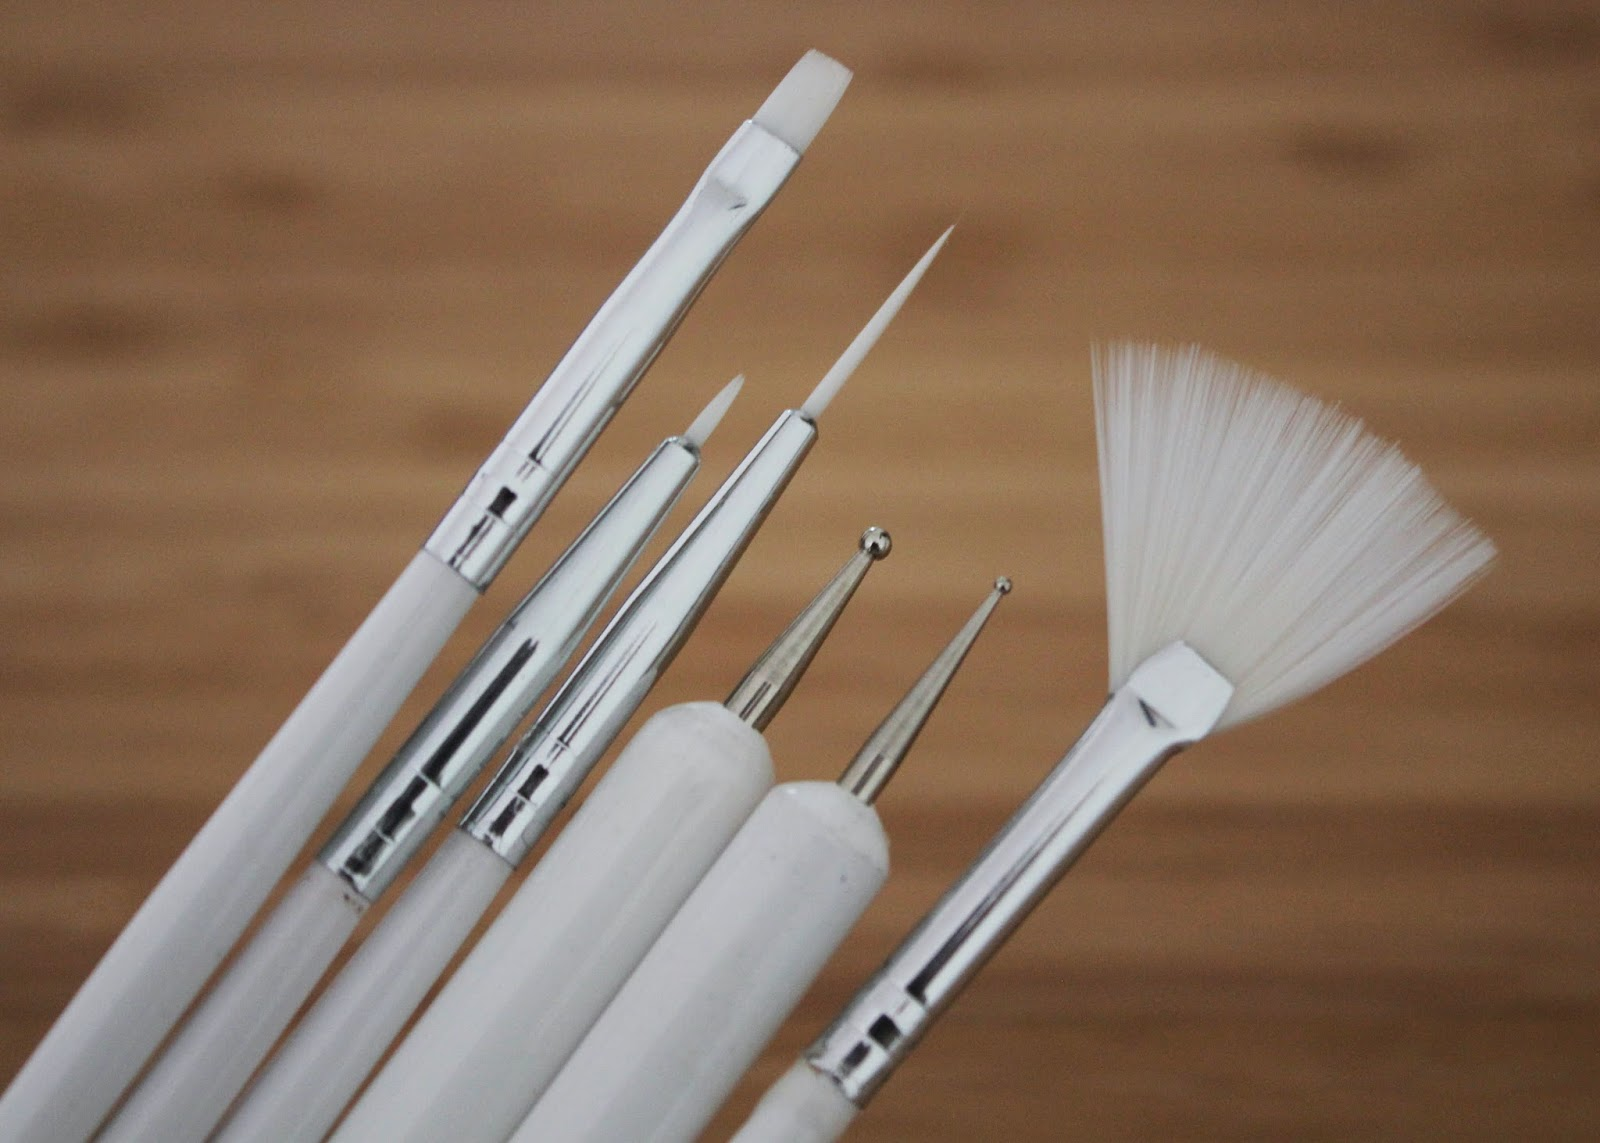 DIY NailArts: Nail art tools